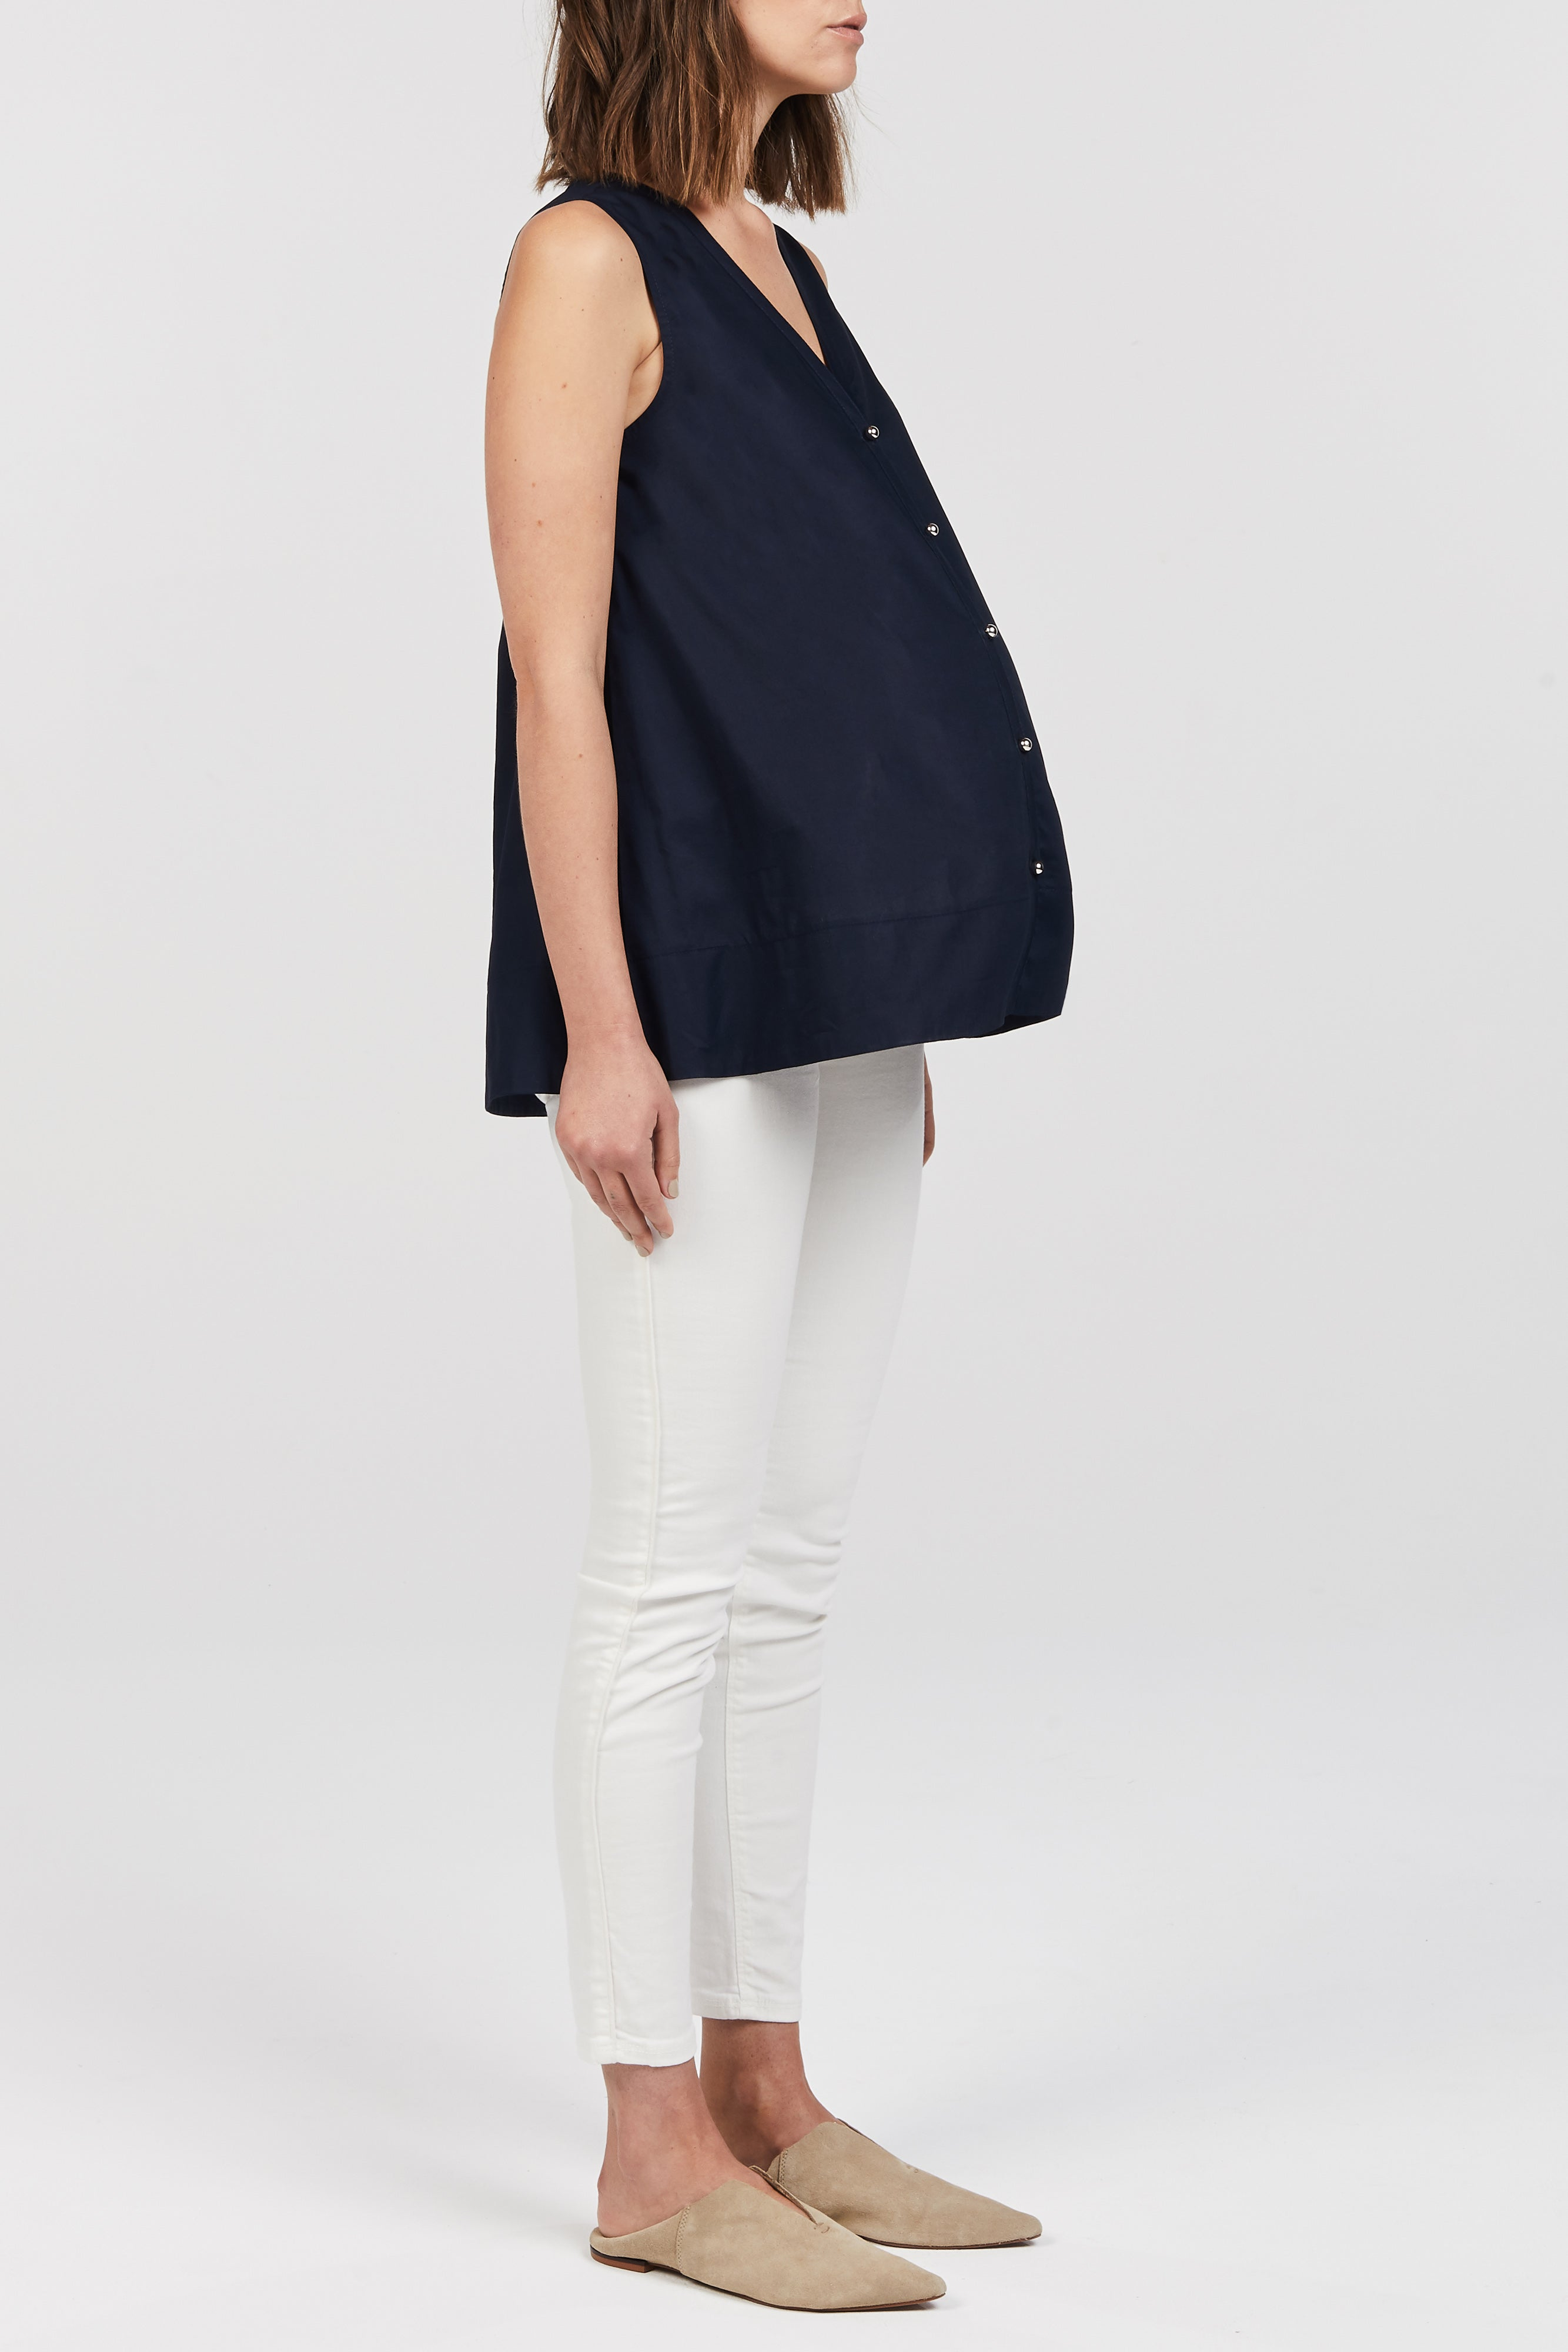 PASSENGER WEAR The Mabel Top